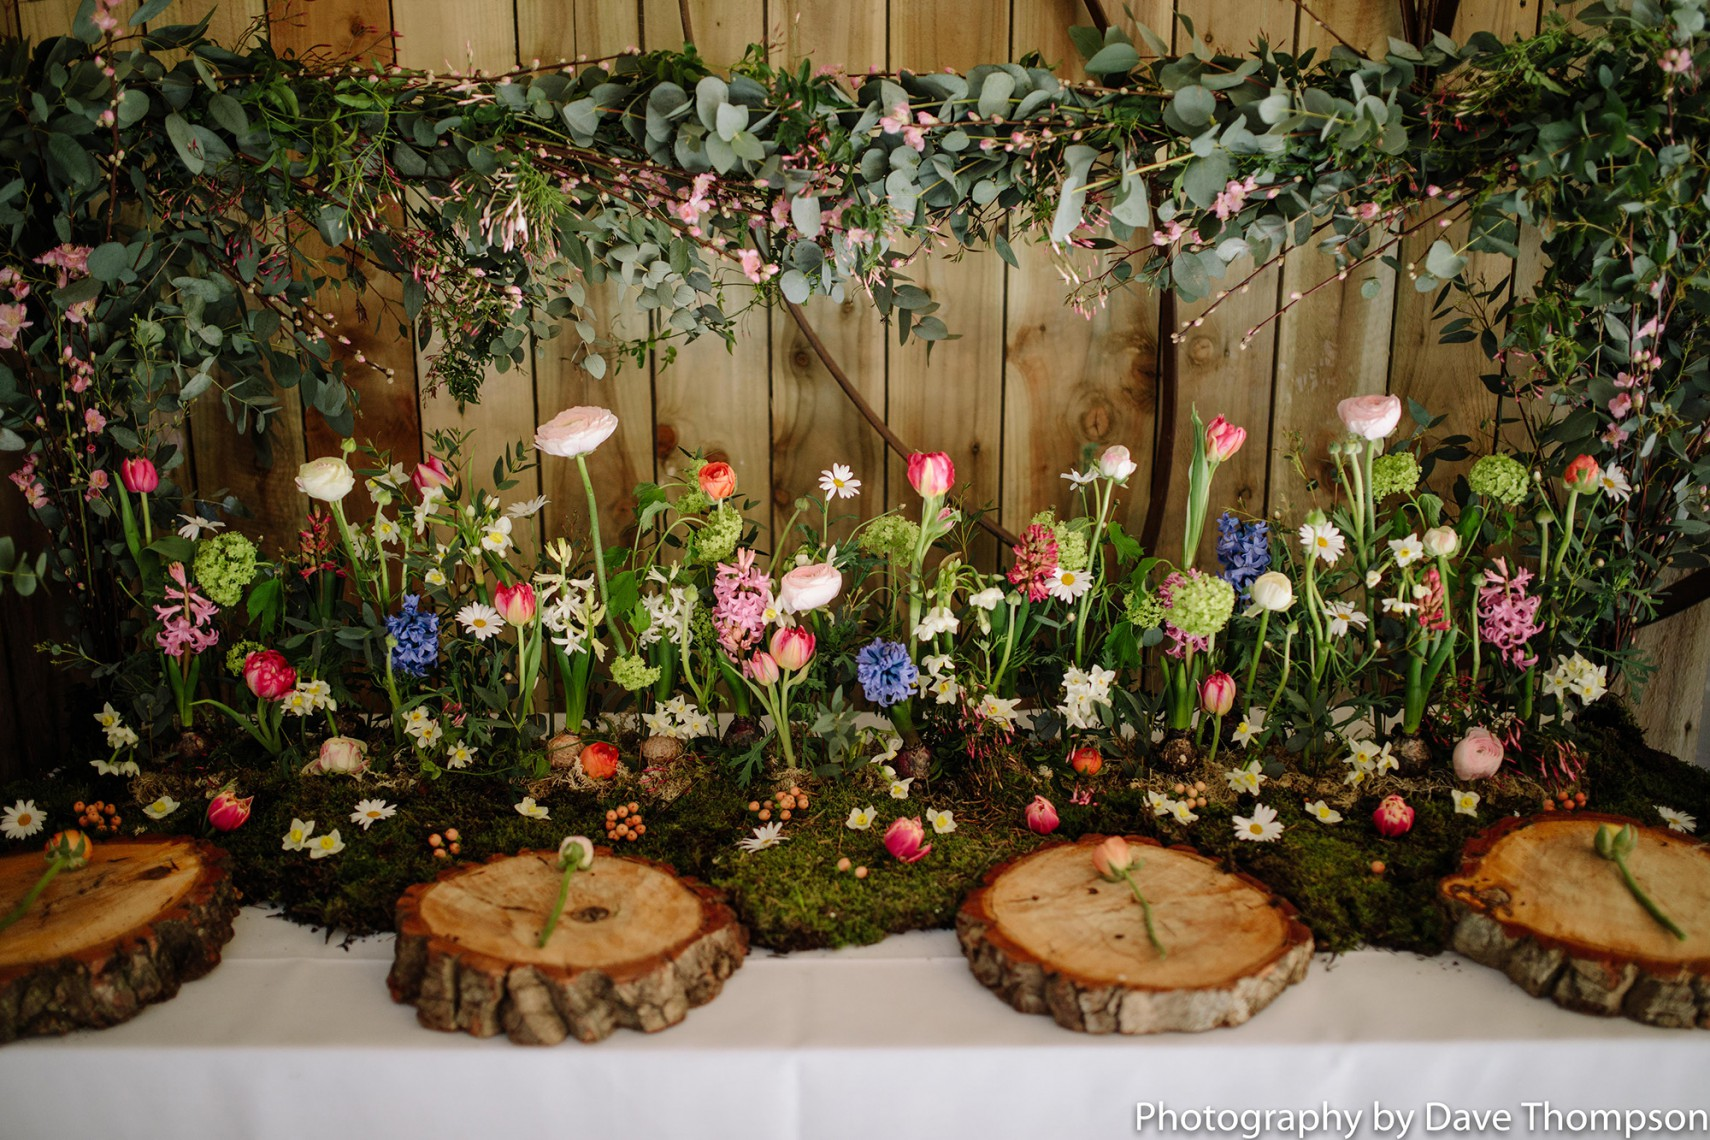 Flowers on display during the Tables dressed for a wedding at Alcumlow Wedding Barn Open Weekend